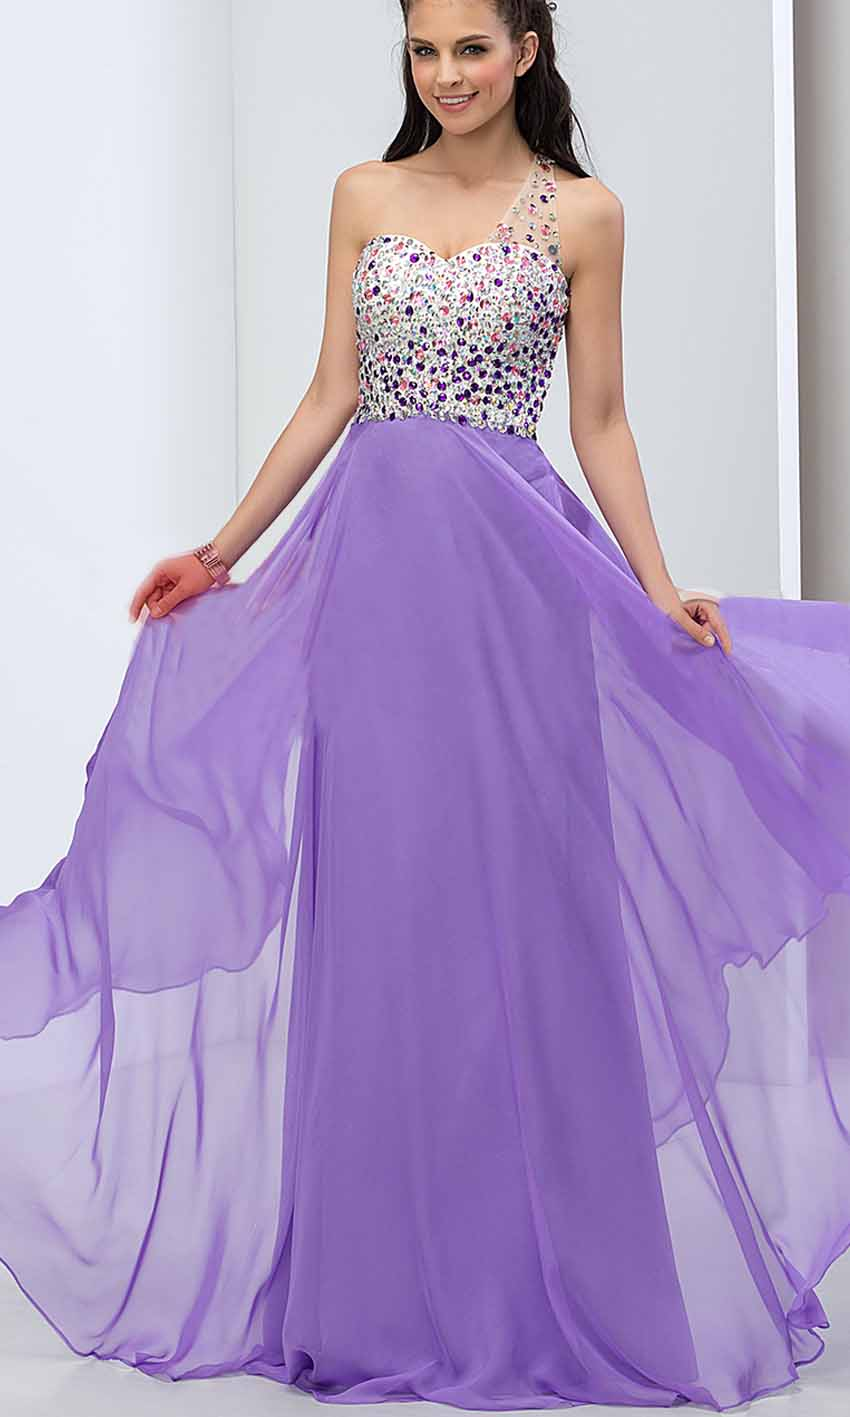 Purple Prom Dresses Uk Cheap - Homecoming Prom Dresses